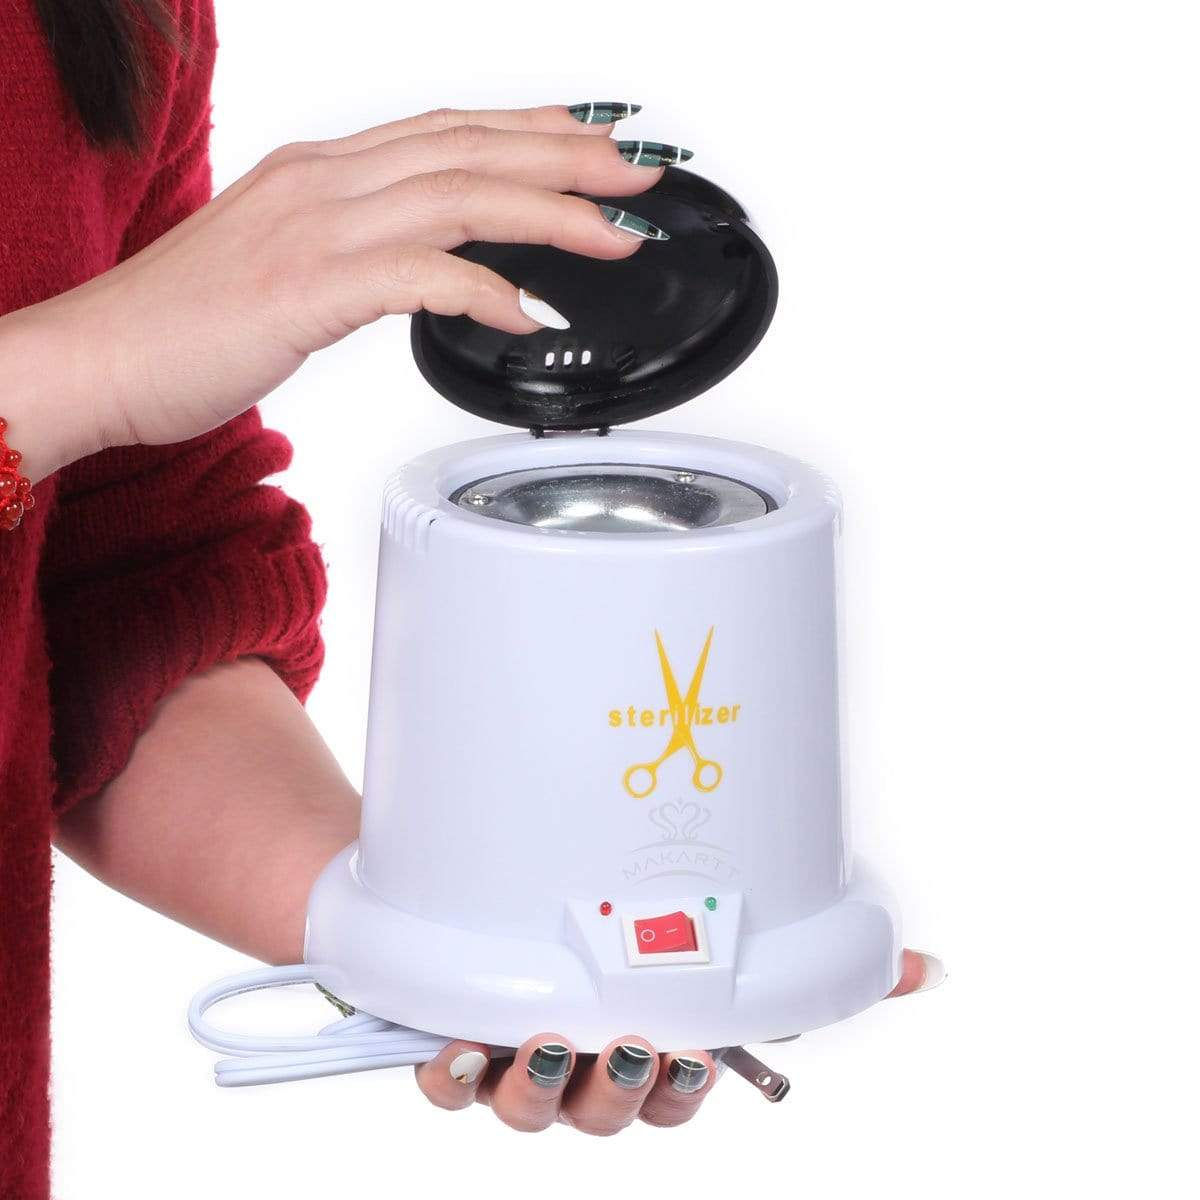 Nail Sterilizer Disinfect Machine - Makartt